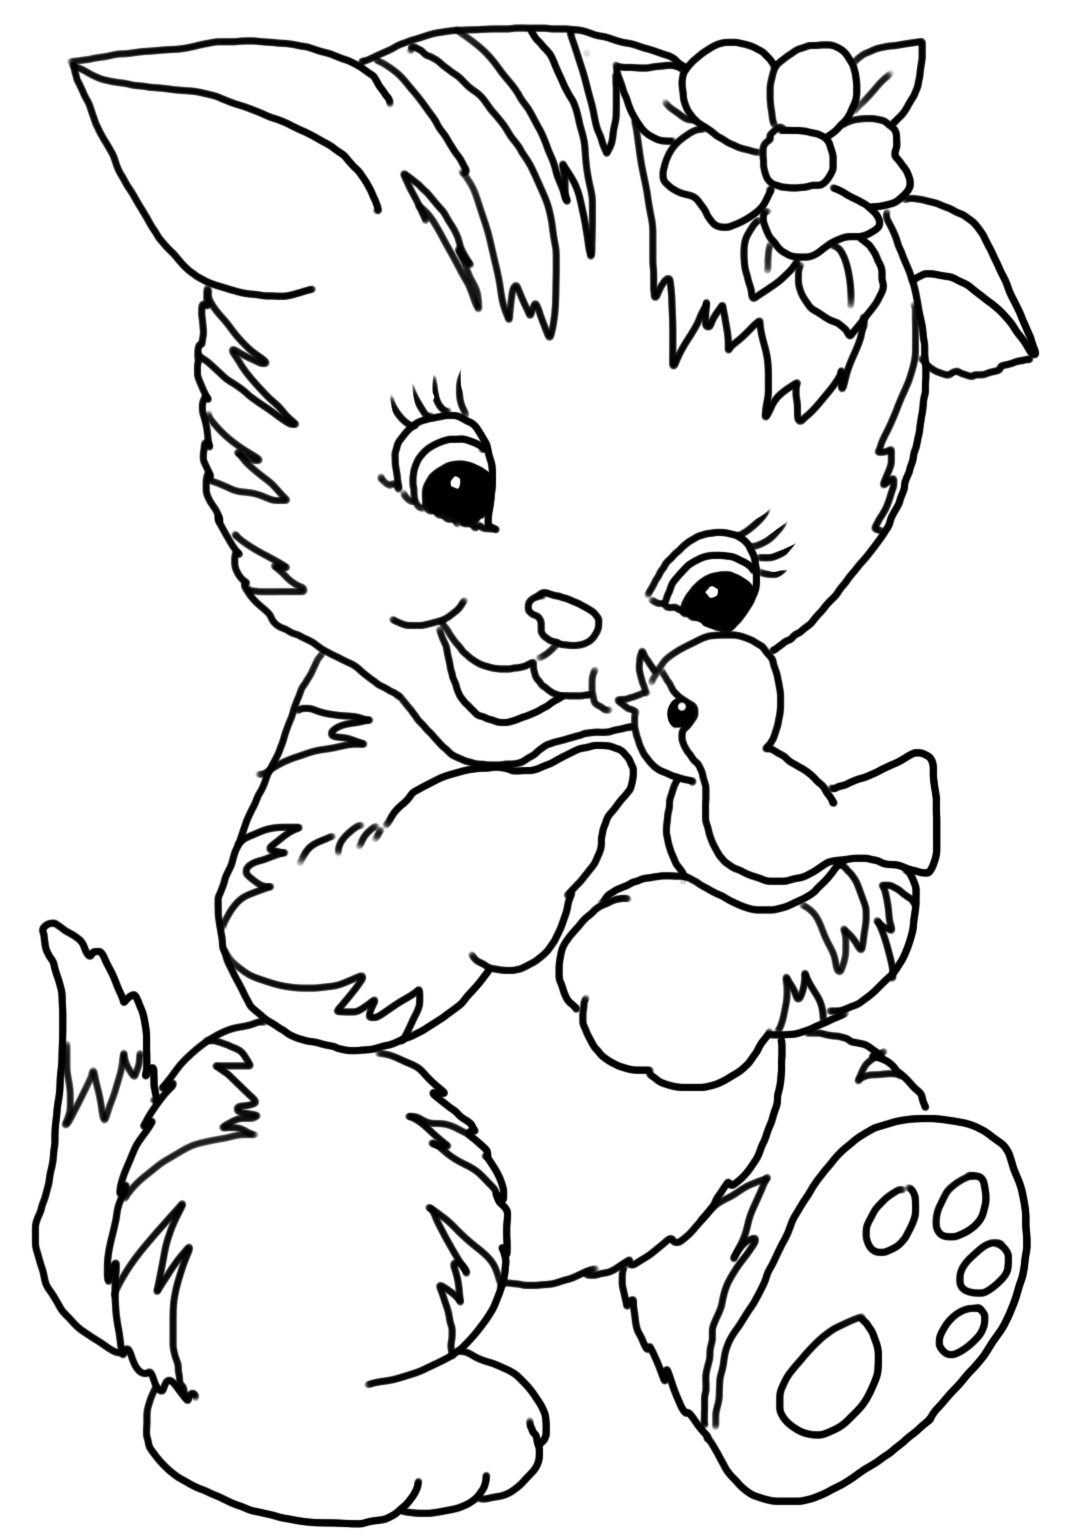 cats coloring free printable cat coloring pages for kids coloring cats